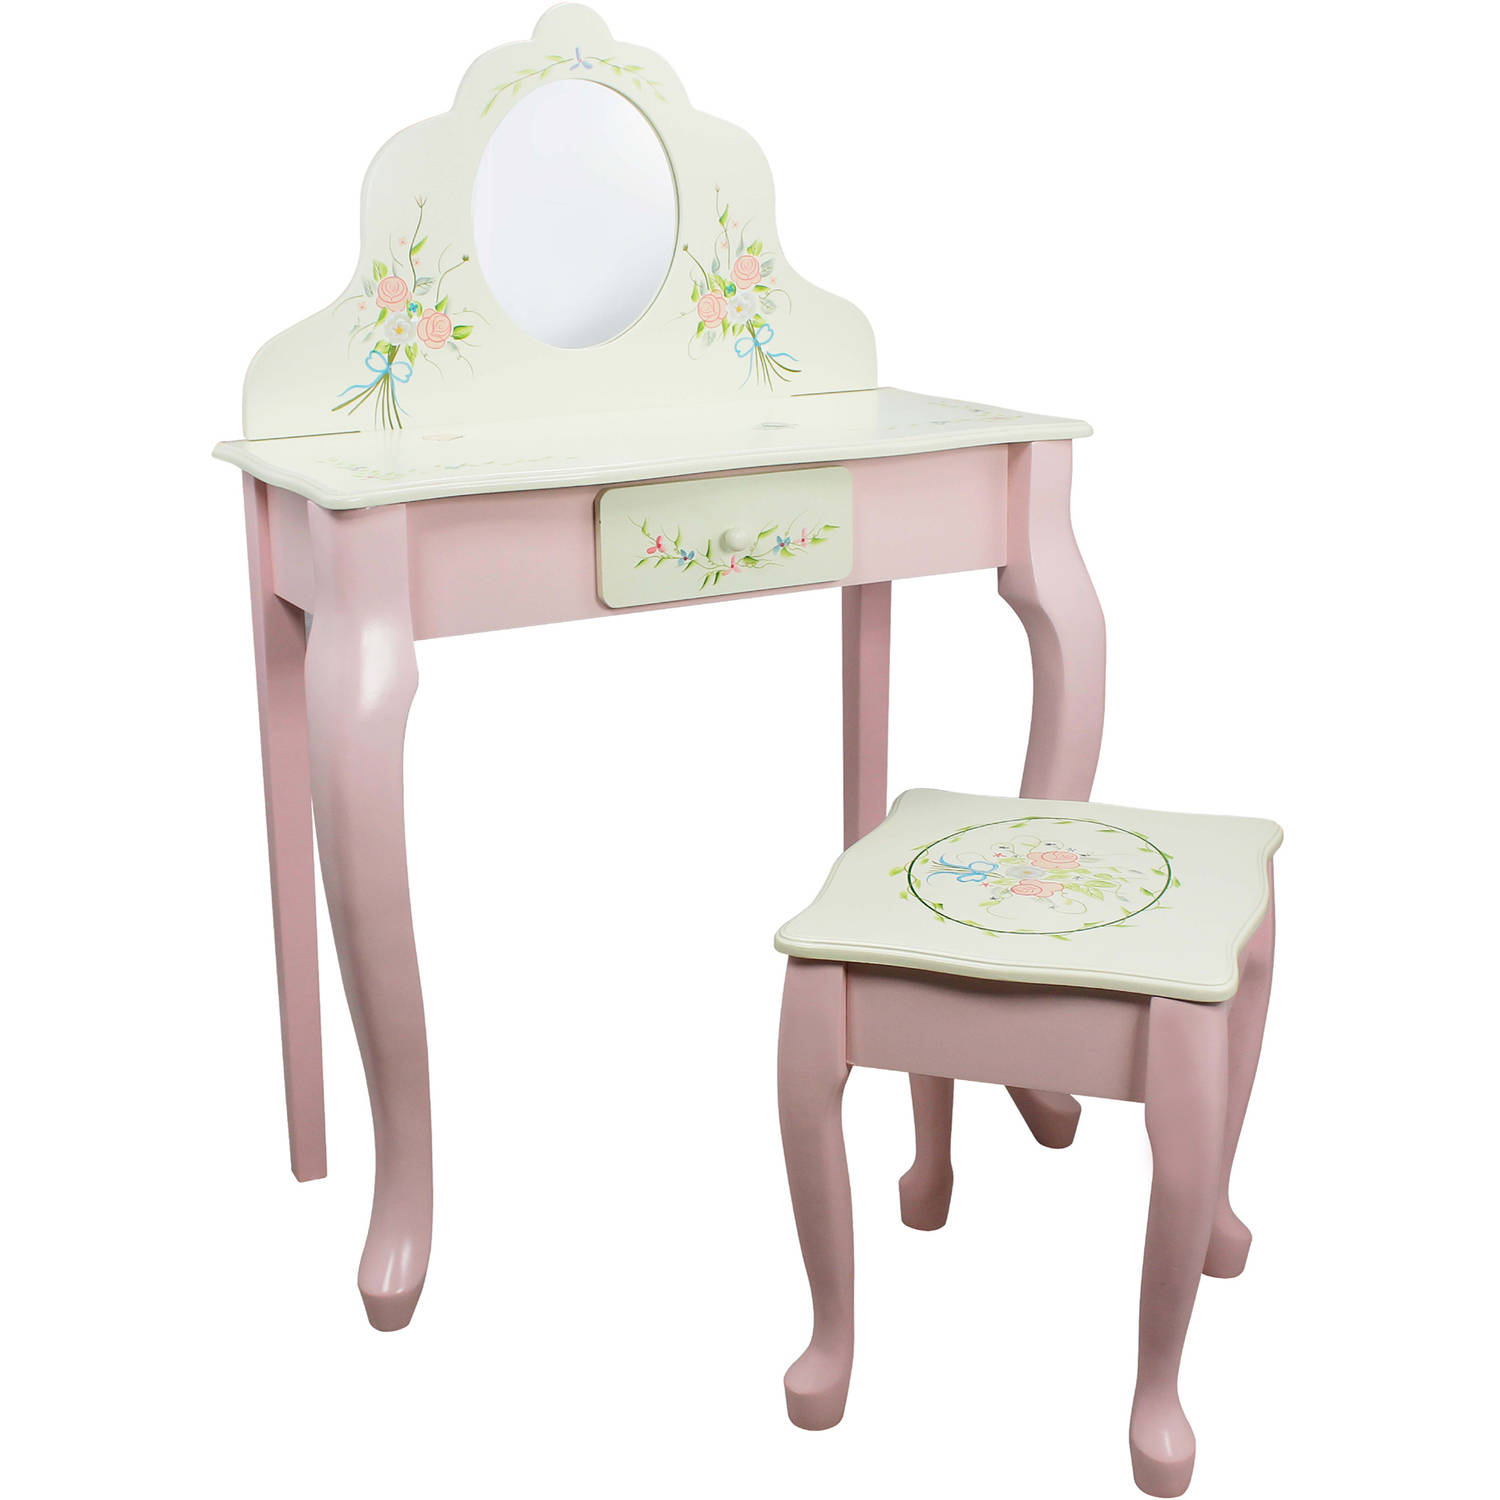 Fantasy Fields Bouquet Classic Vanity Table and Stool Set by Teamson